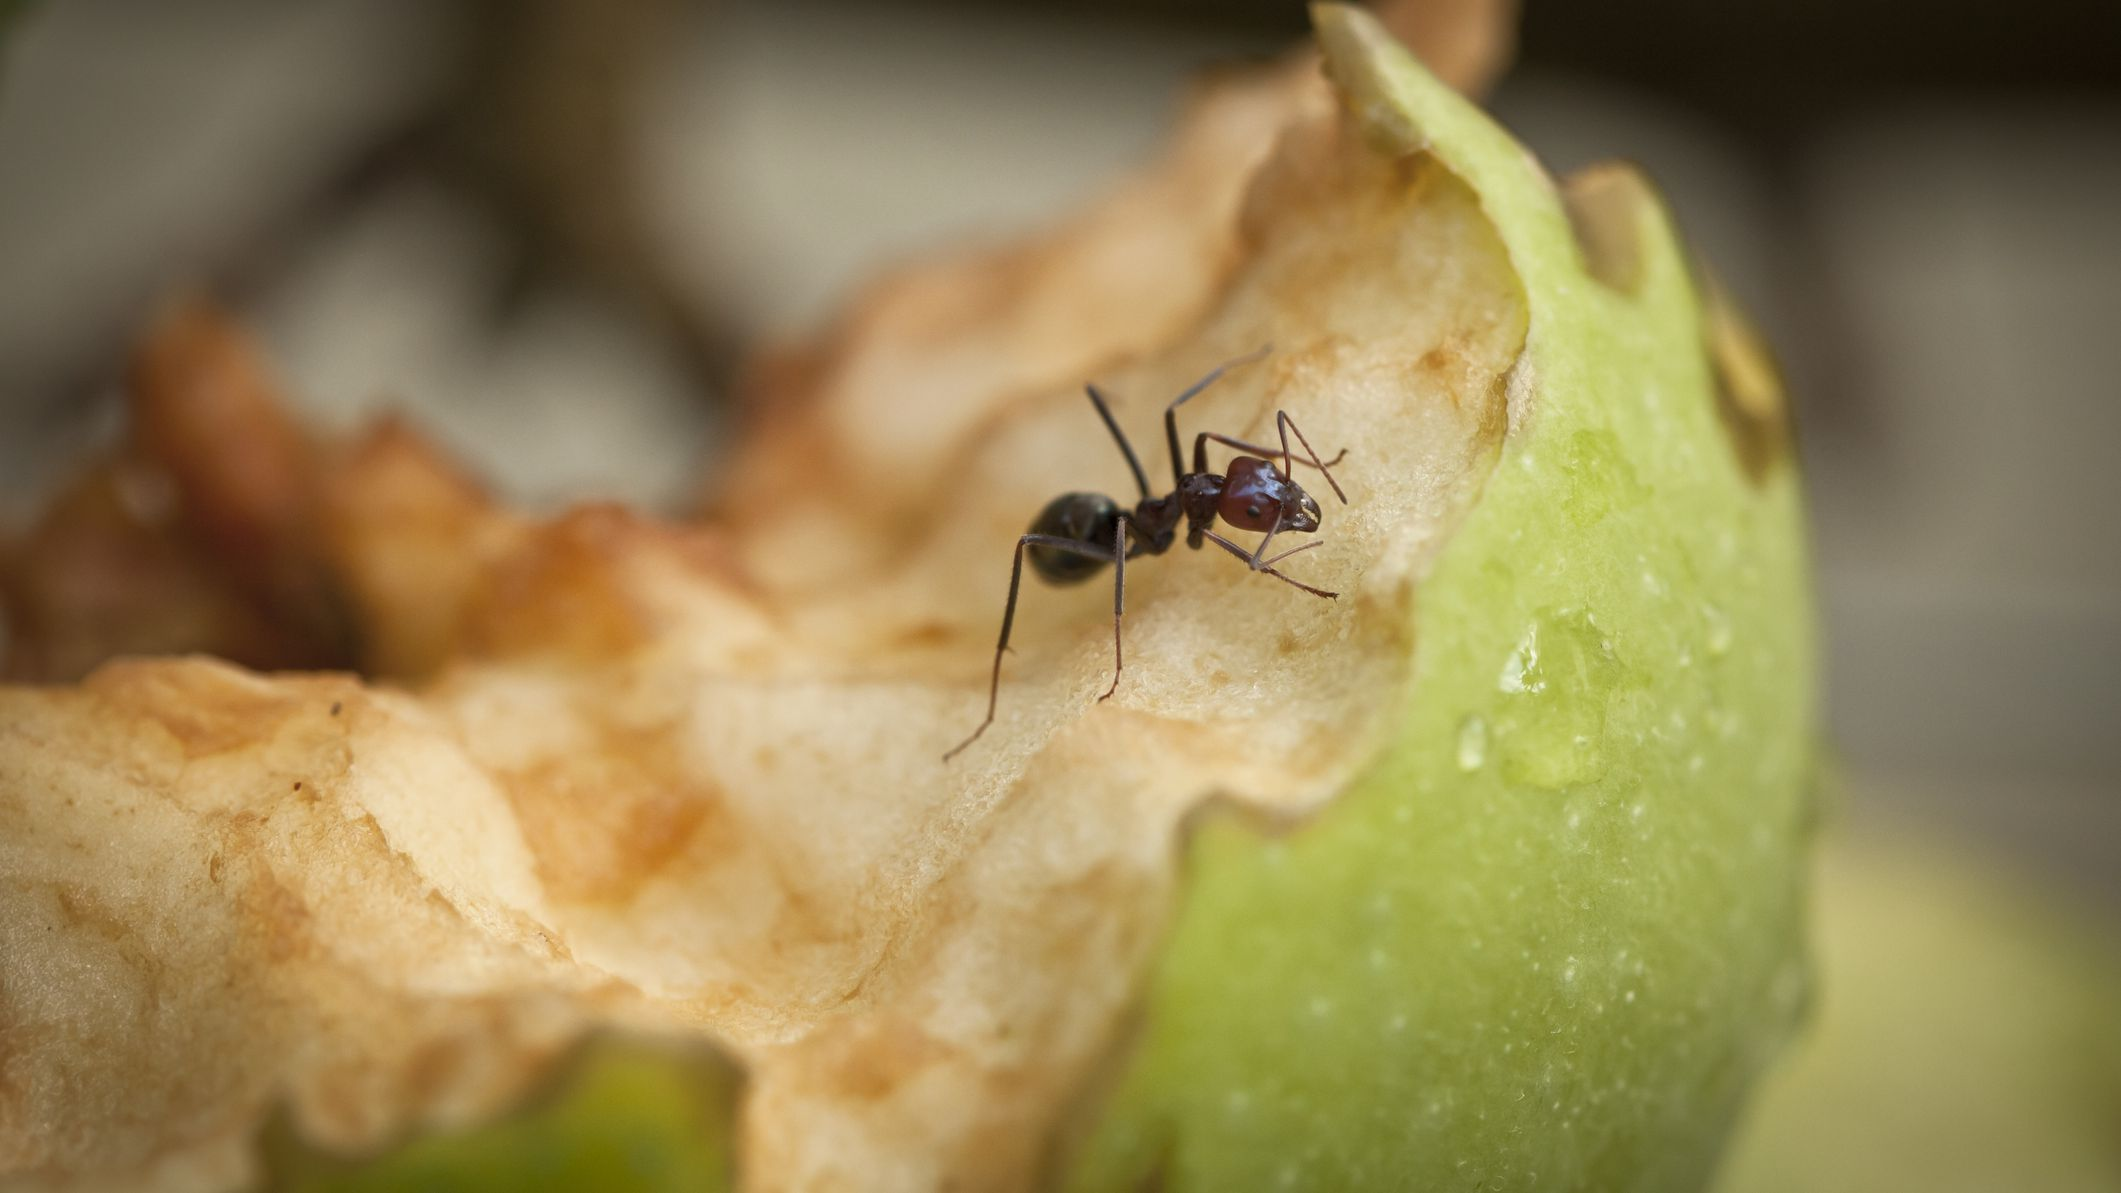 What do ants eat - Image By treehugger